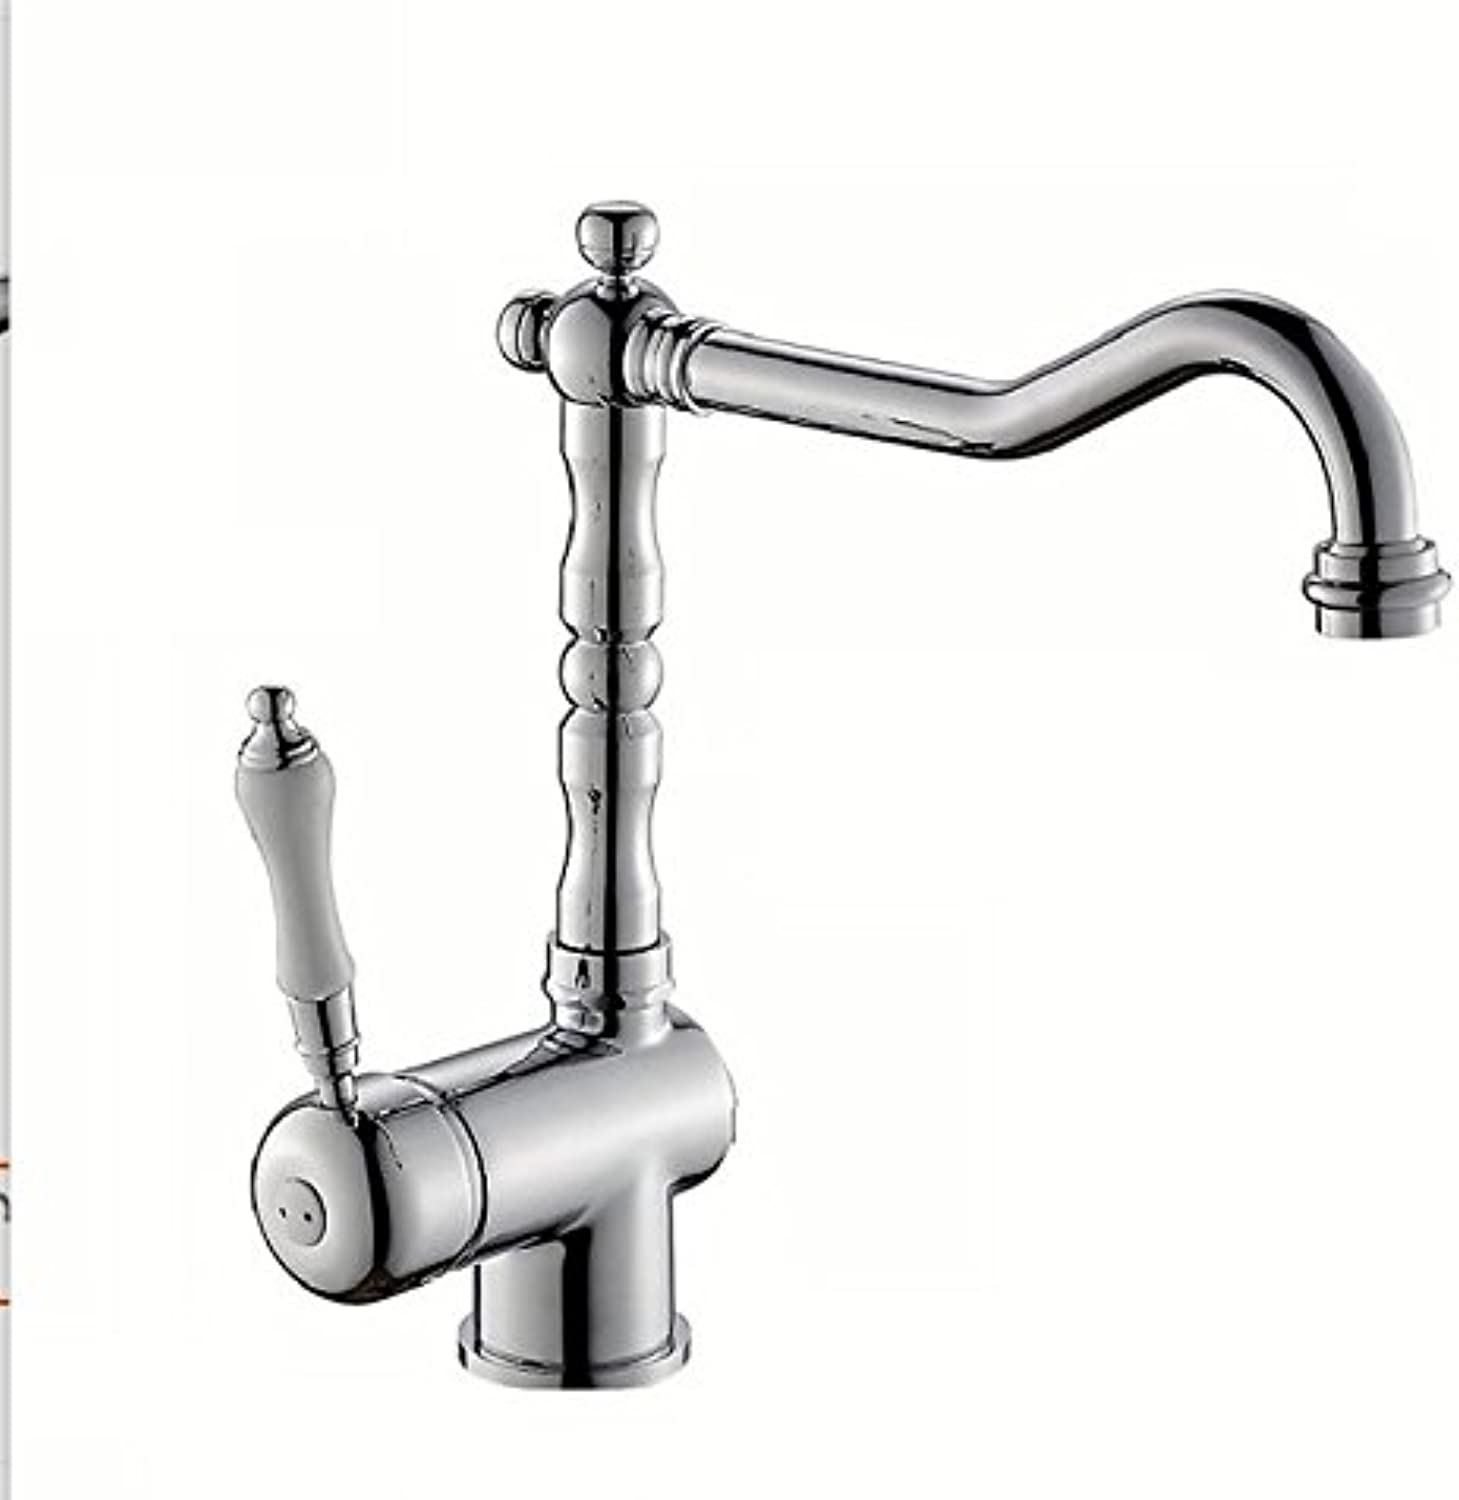 Makej Silver Brass Bathroom Sink Faucet Hot Cold Mixer Water Tap